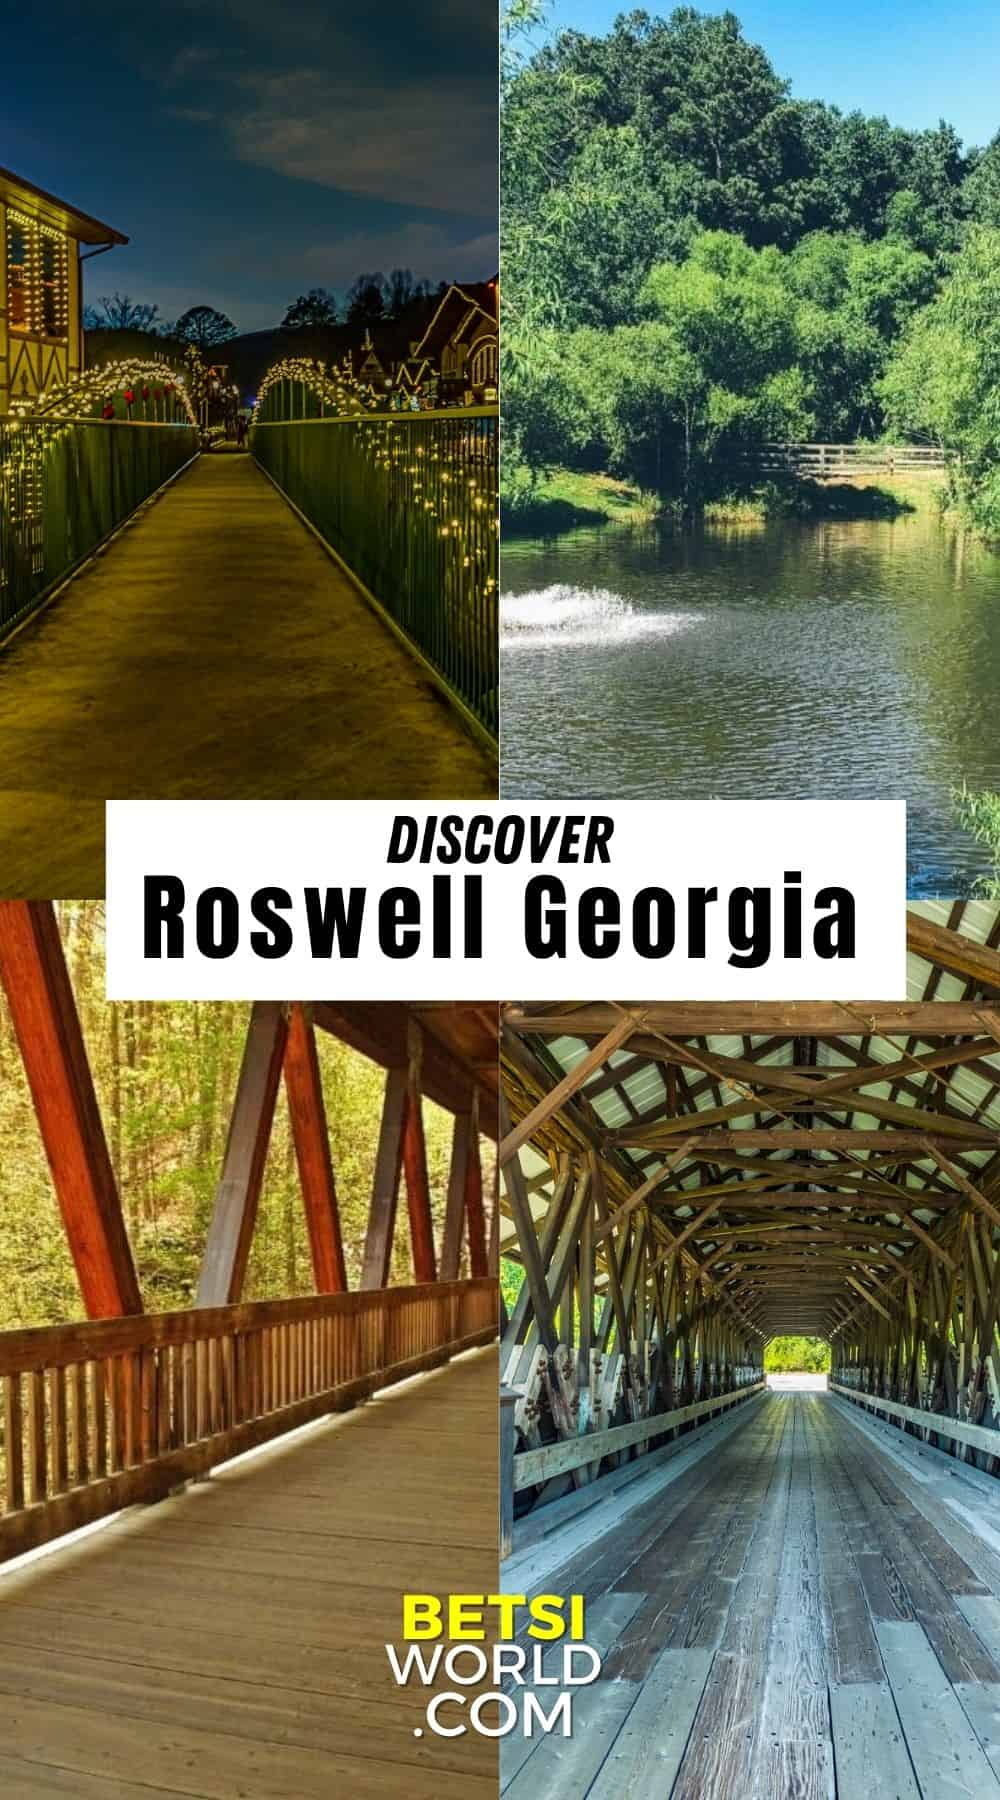 Christmas lights on a bridge, view of water under a bridge with green trees around, and two walking bridges. Discover Roswell, Georgia